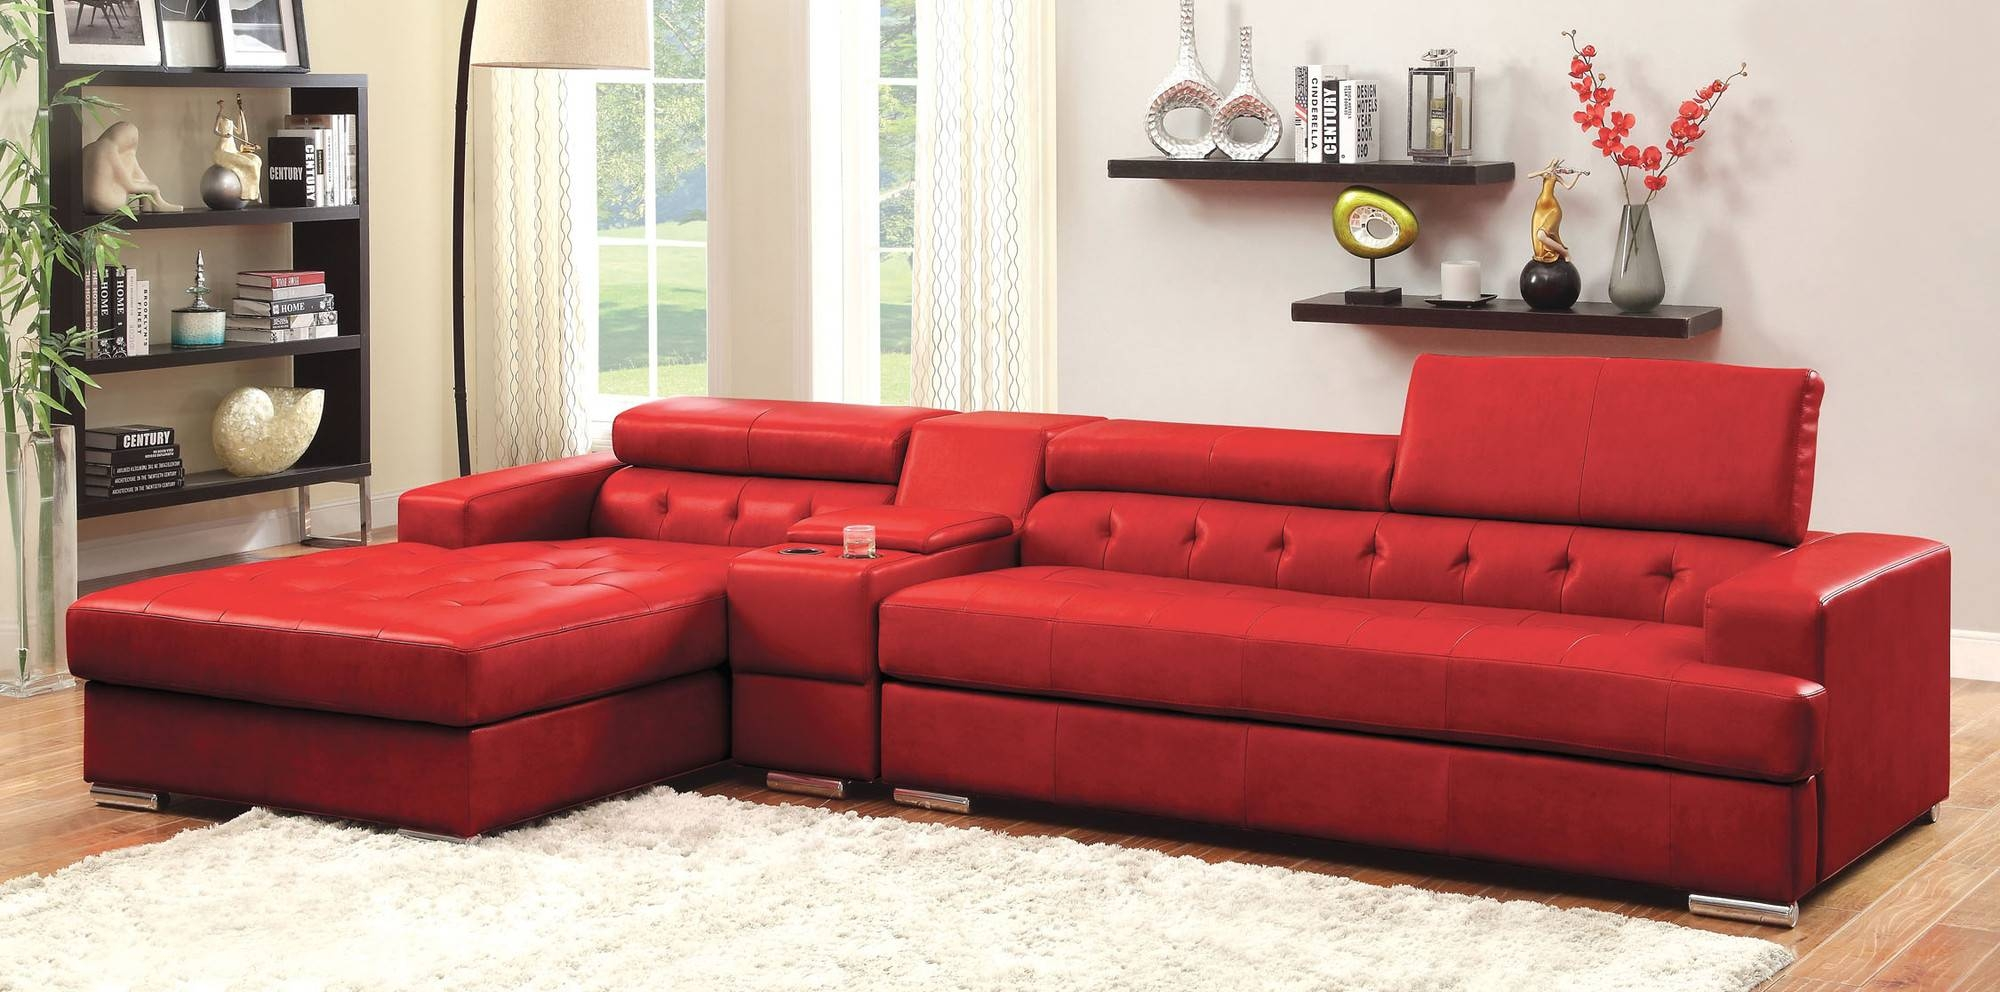 26 Contemporary Red Sofa | Auto-Auctions intended for Red Sofa Chairs (Image 1 of 30)